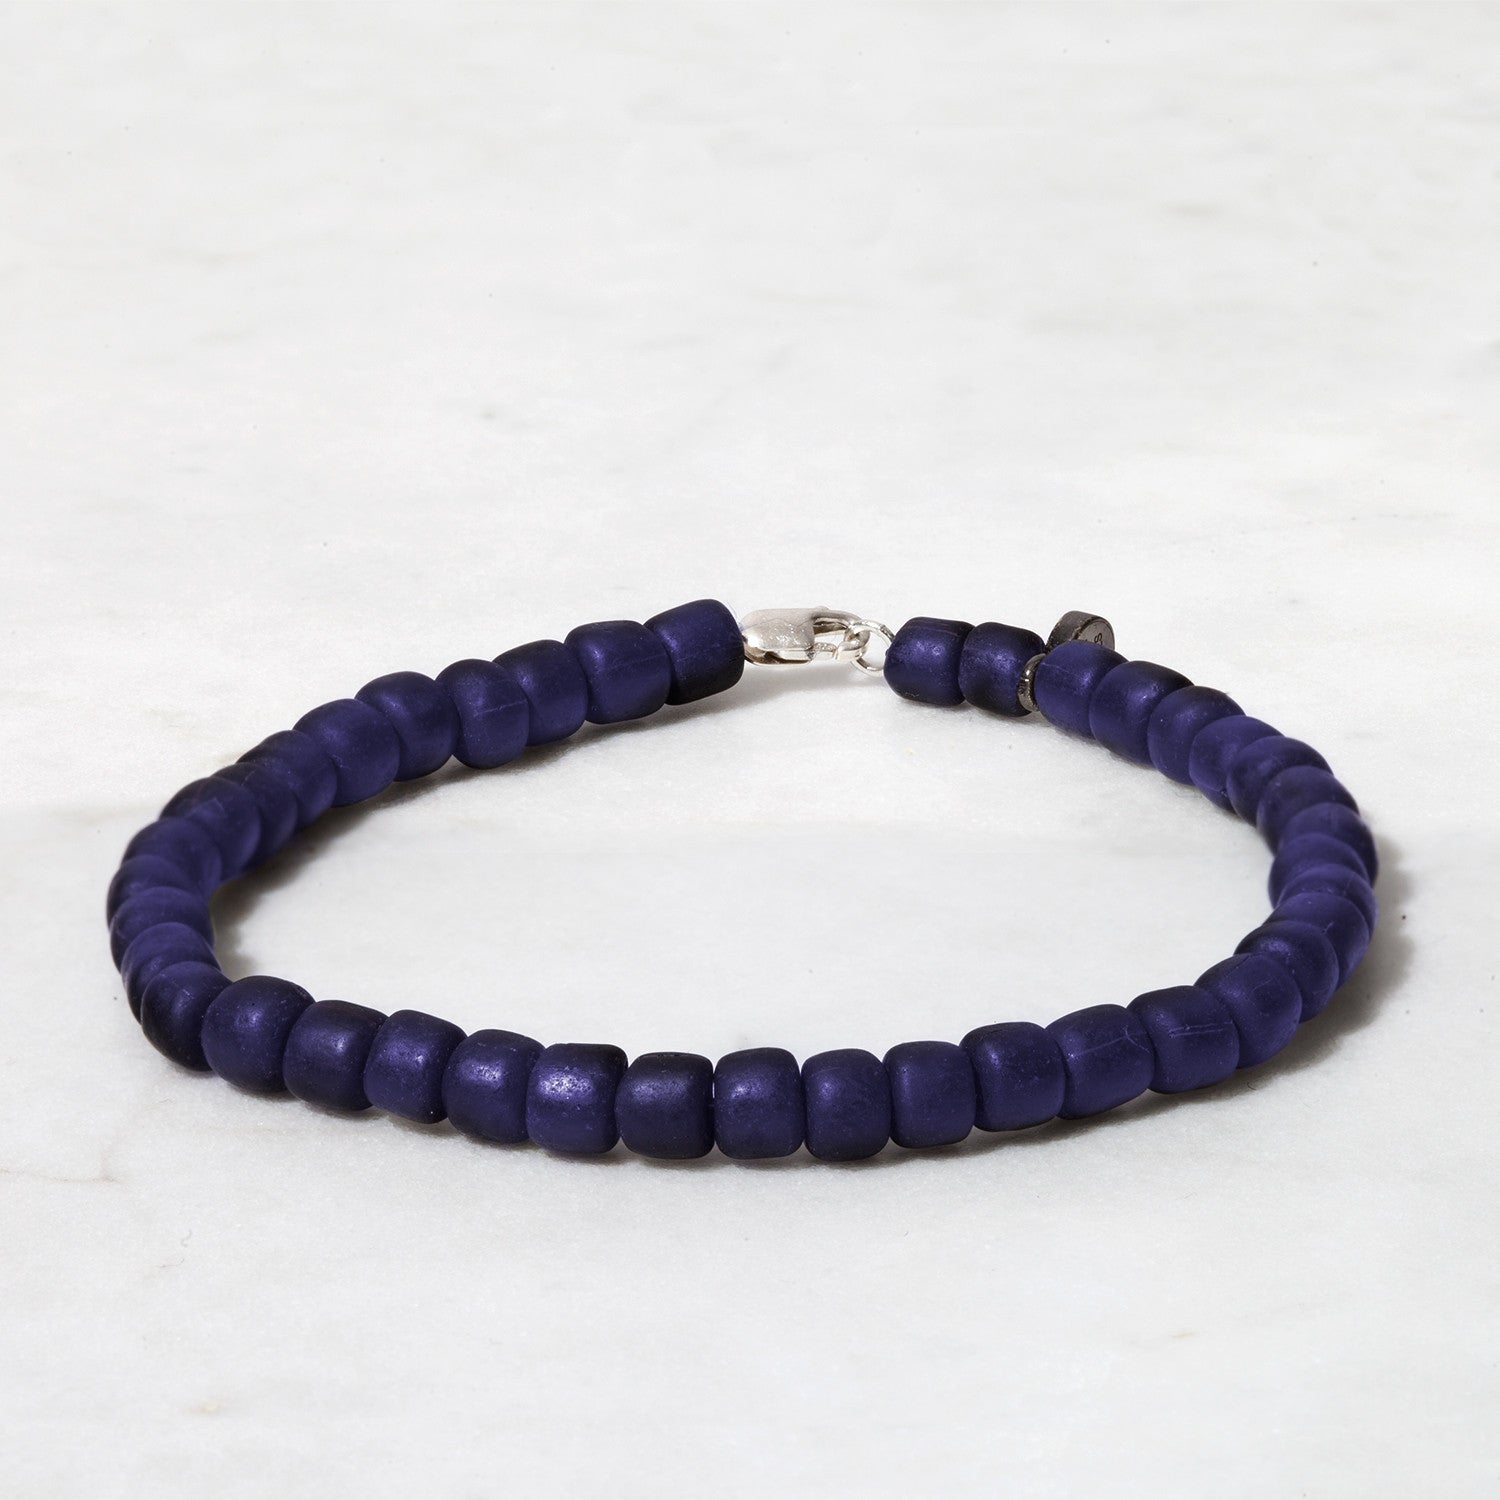 s natural traveler kiel patrick navy thread james collection bracelet travelers world products stack